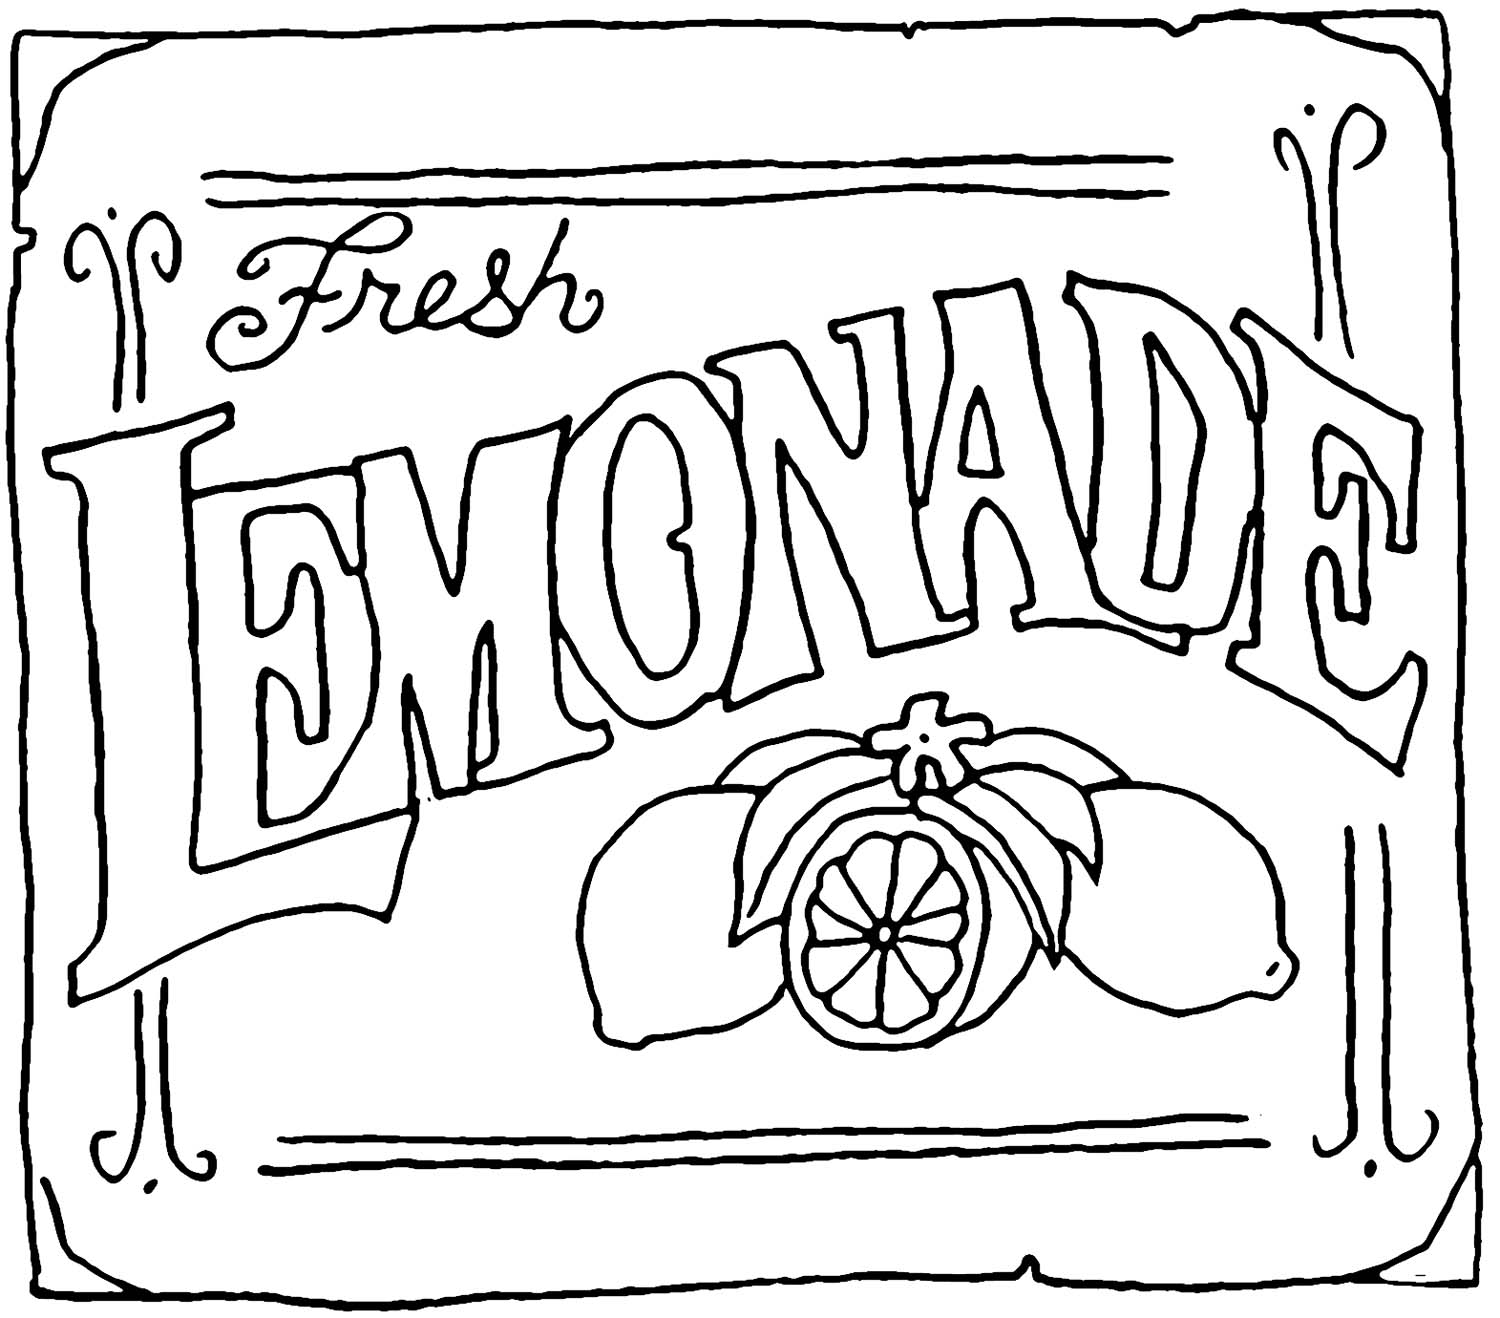 Fresh Lemonade Sign Coloring Pages